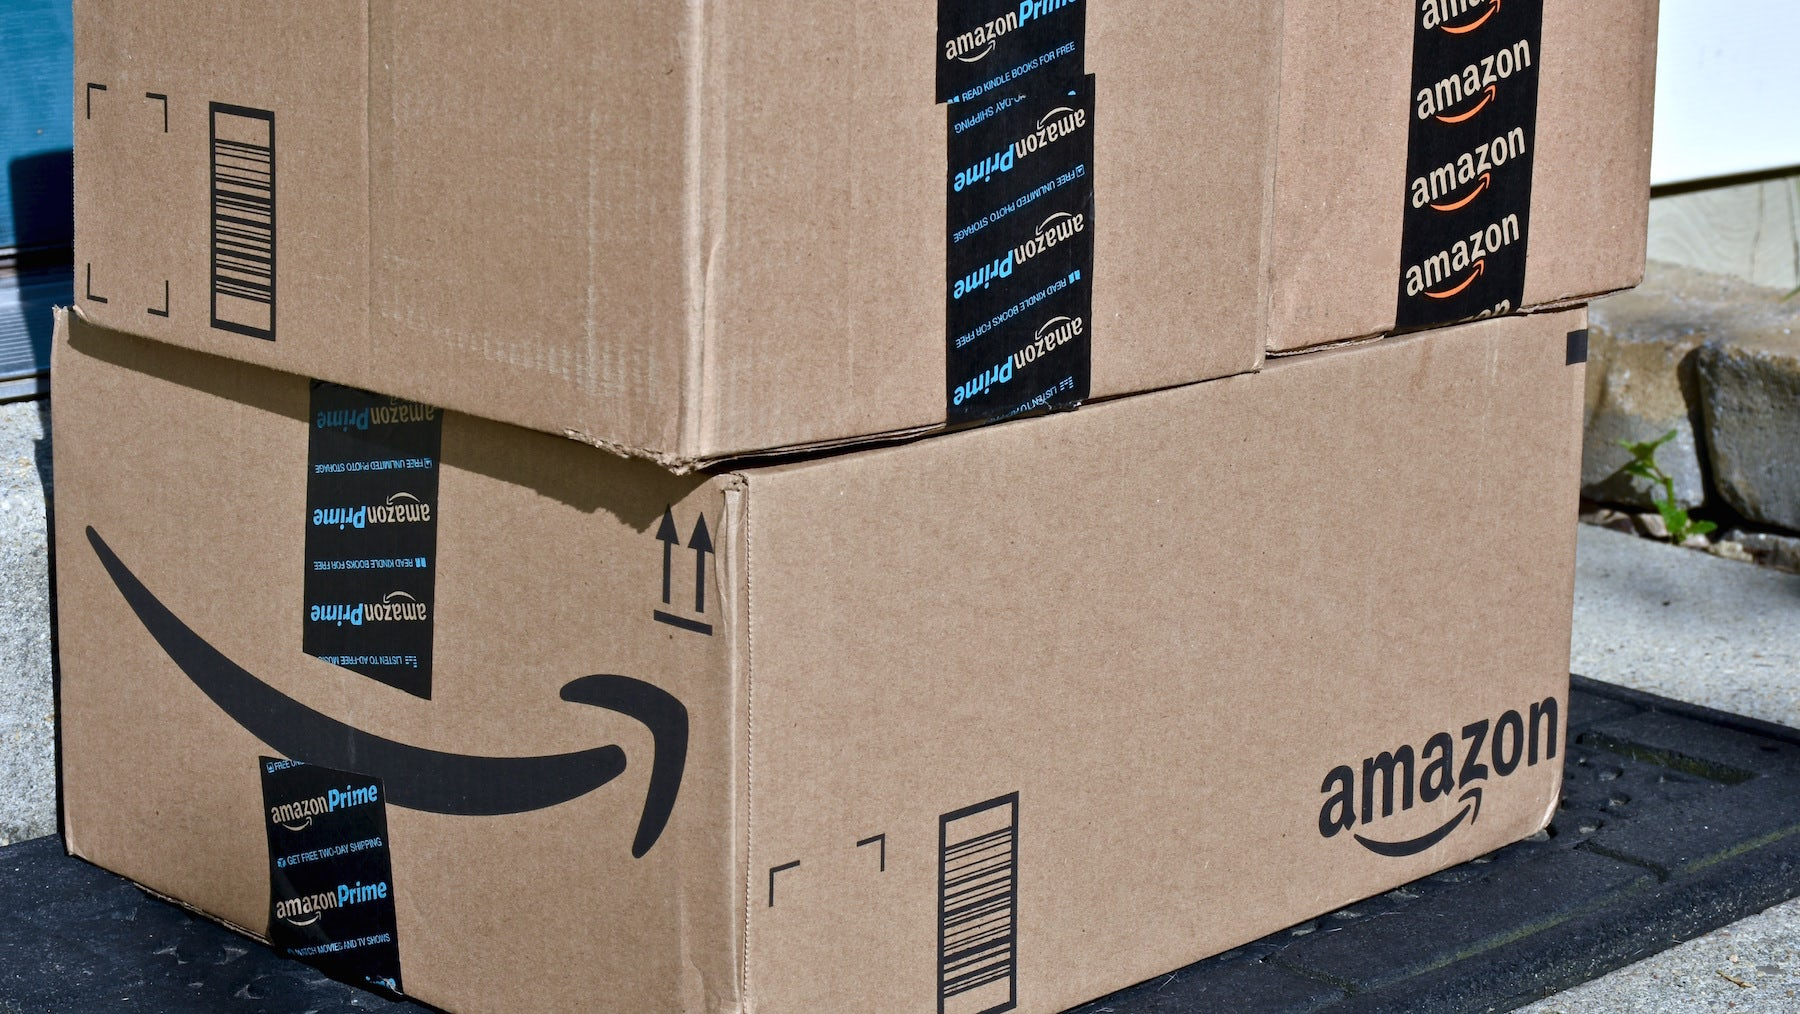 Amazon boxes | Source: Shutterstock